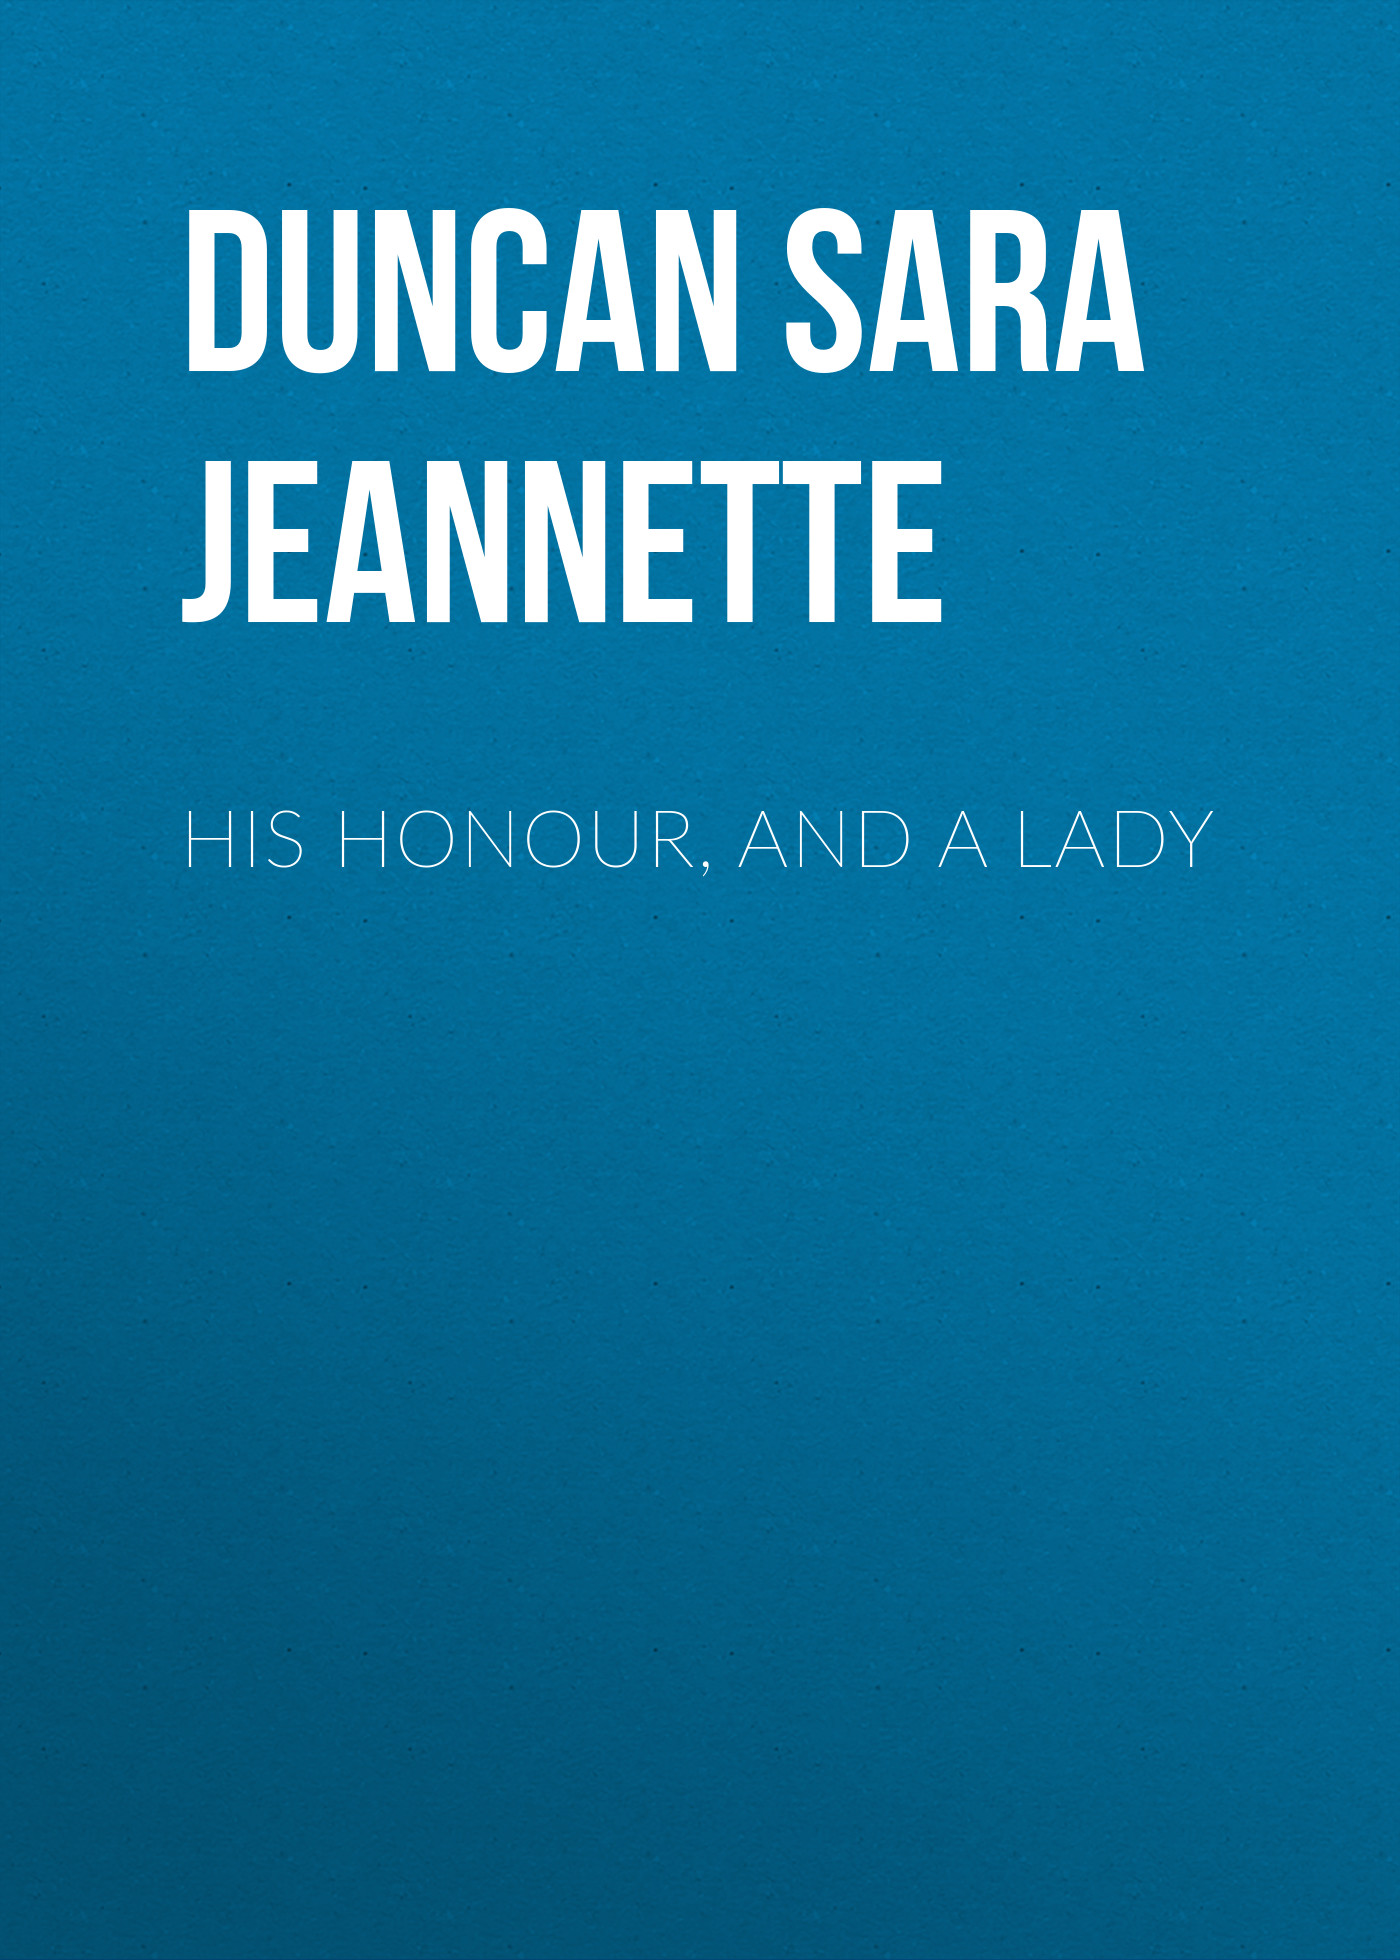 Duncan Sara Jeannette His Honour, and a Lady duncan sara jeannette his honour and a lady